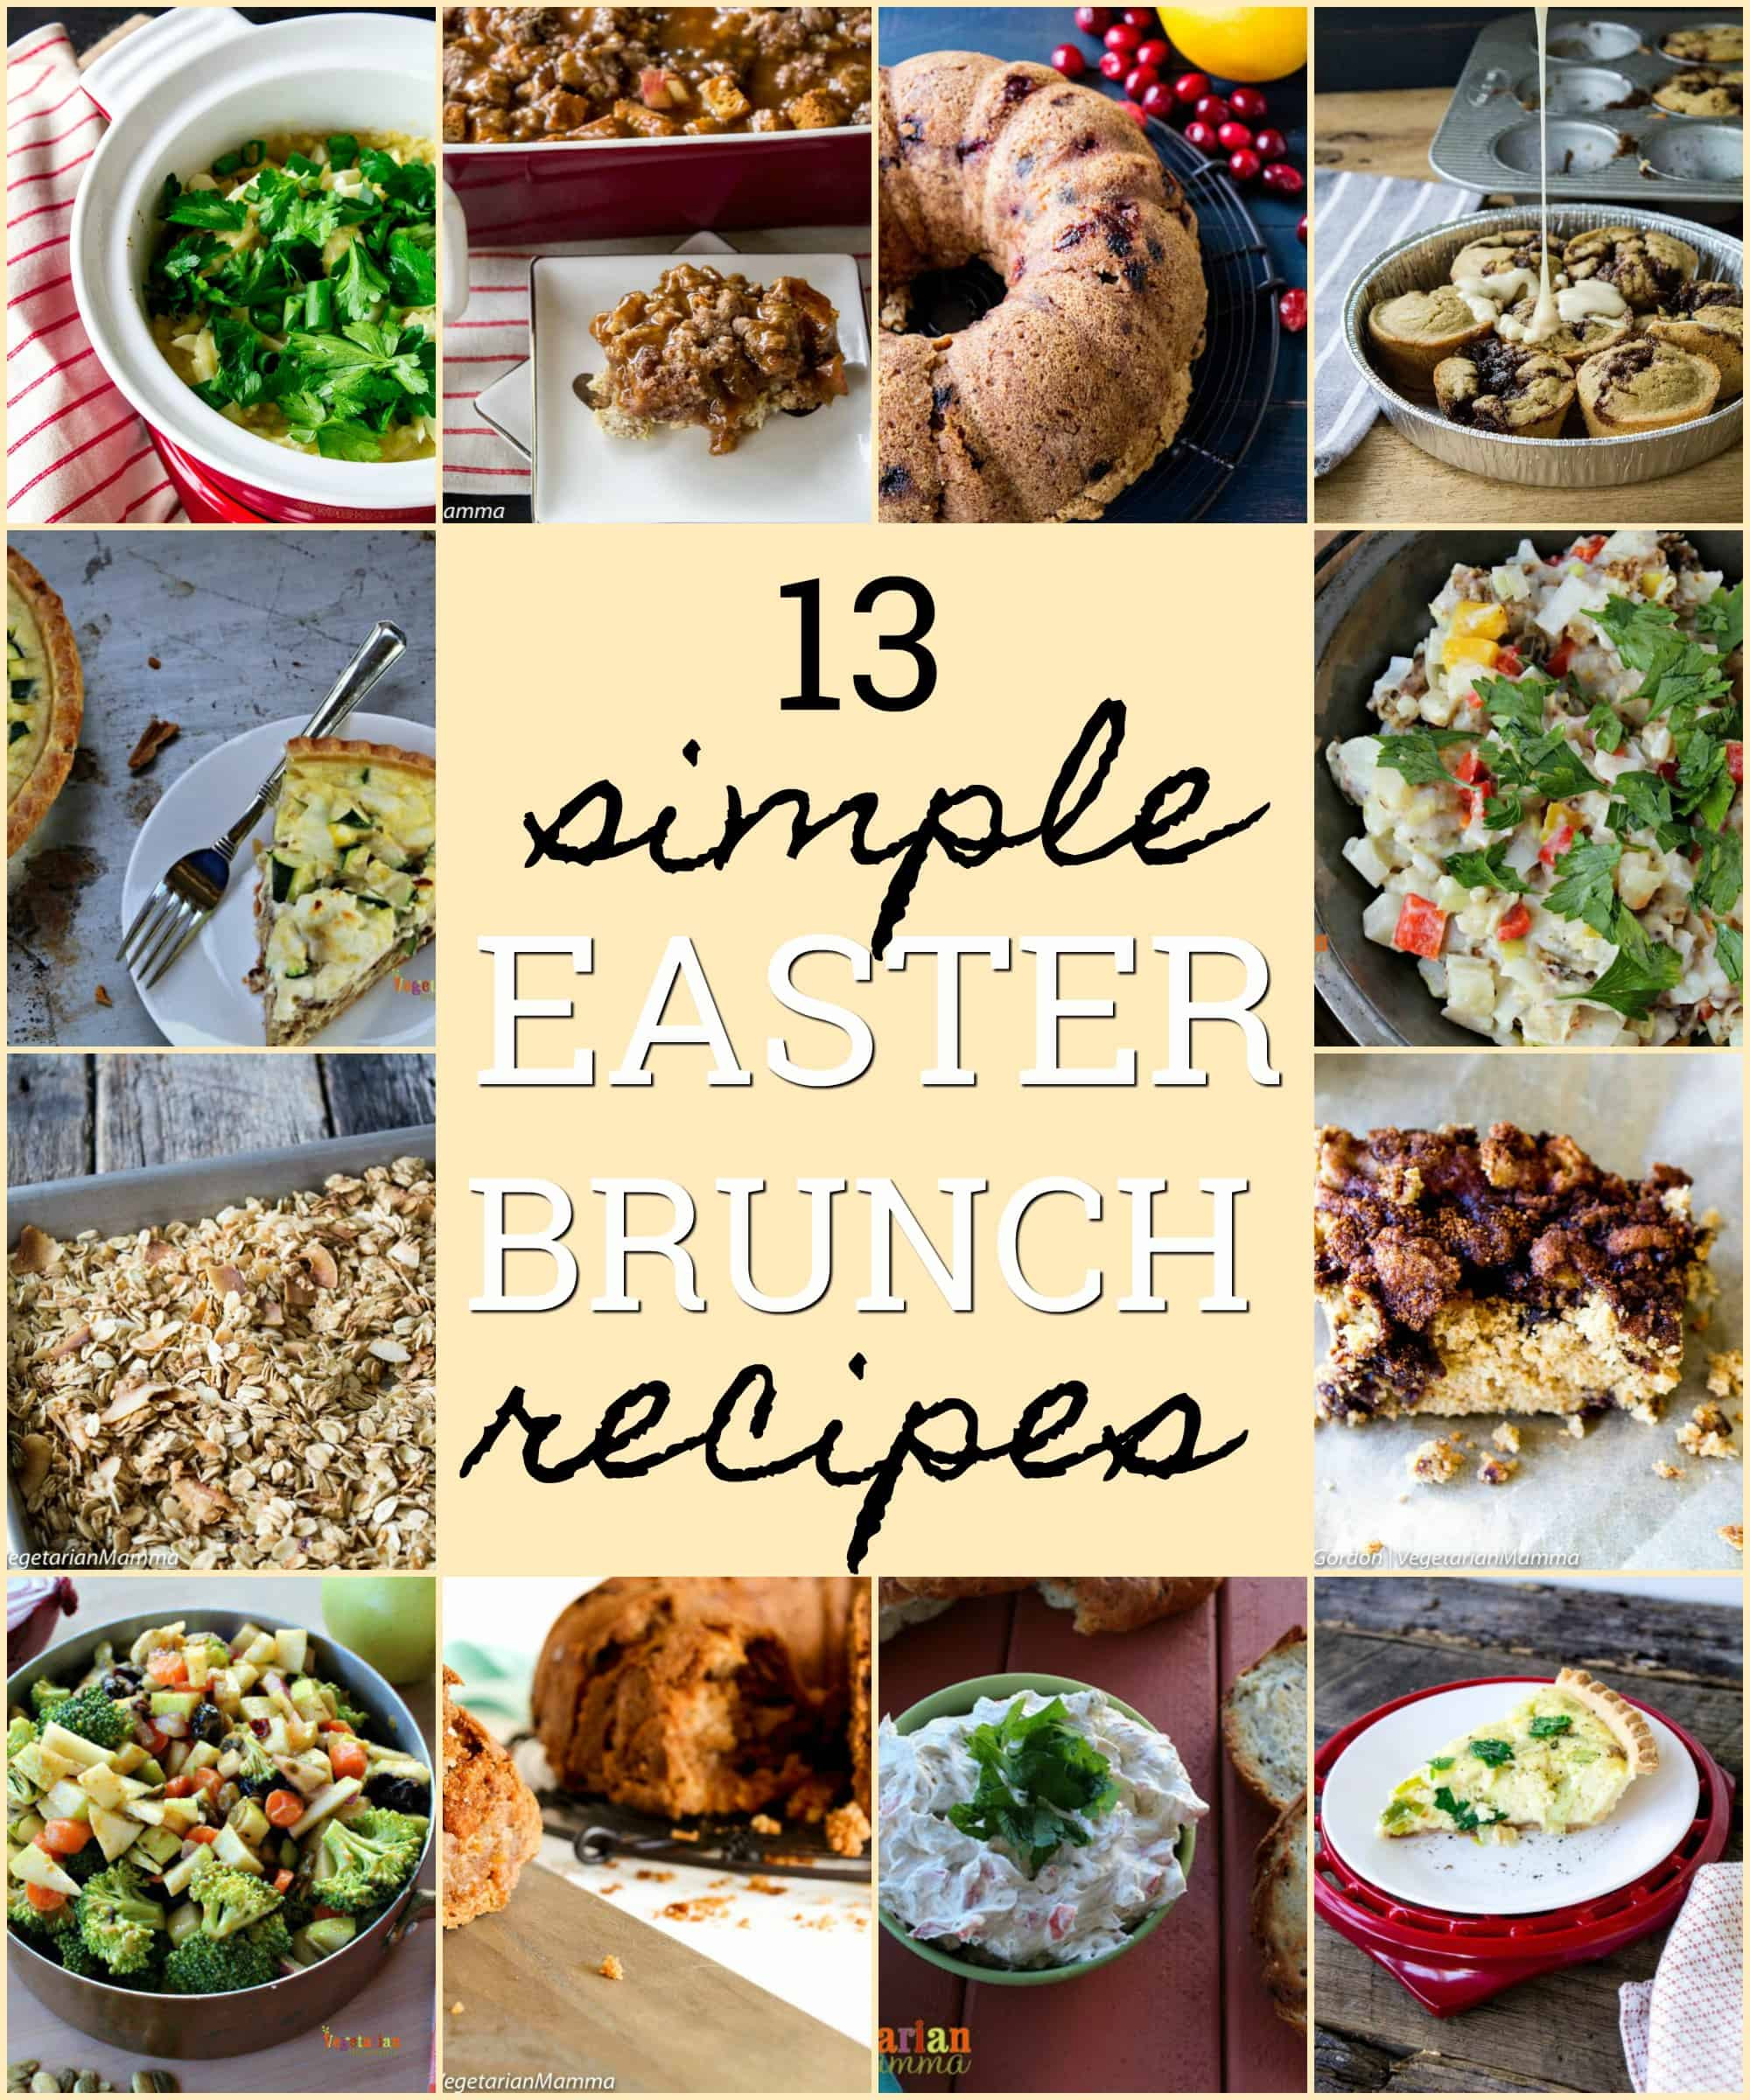 Vegetarian Easter Brunch Recipes  12 Family Approved Easter Brunch Recipes